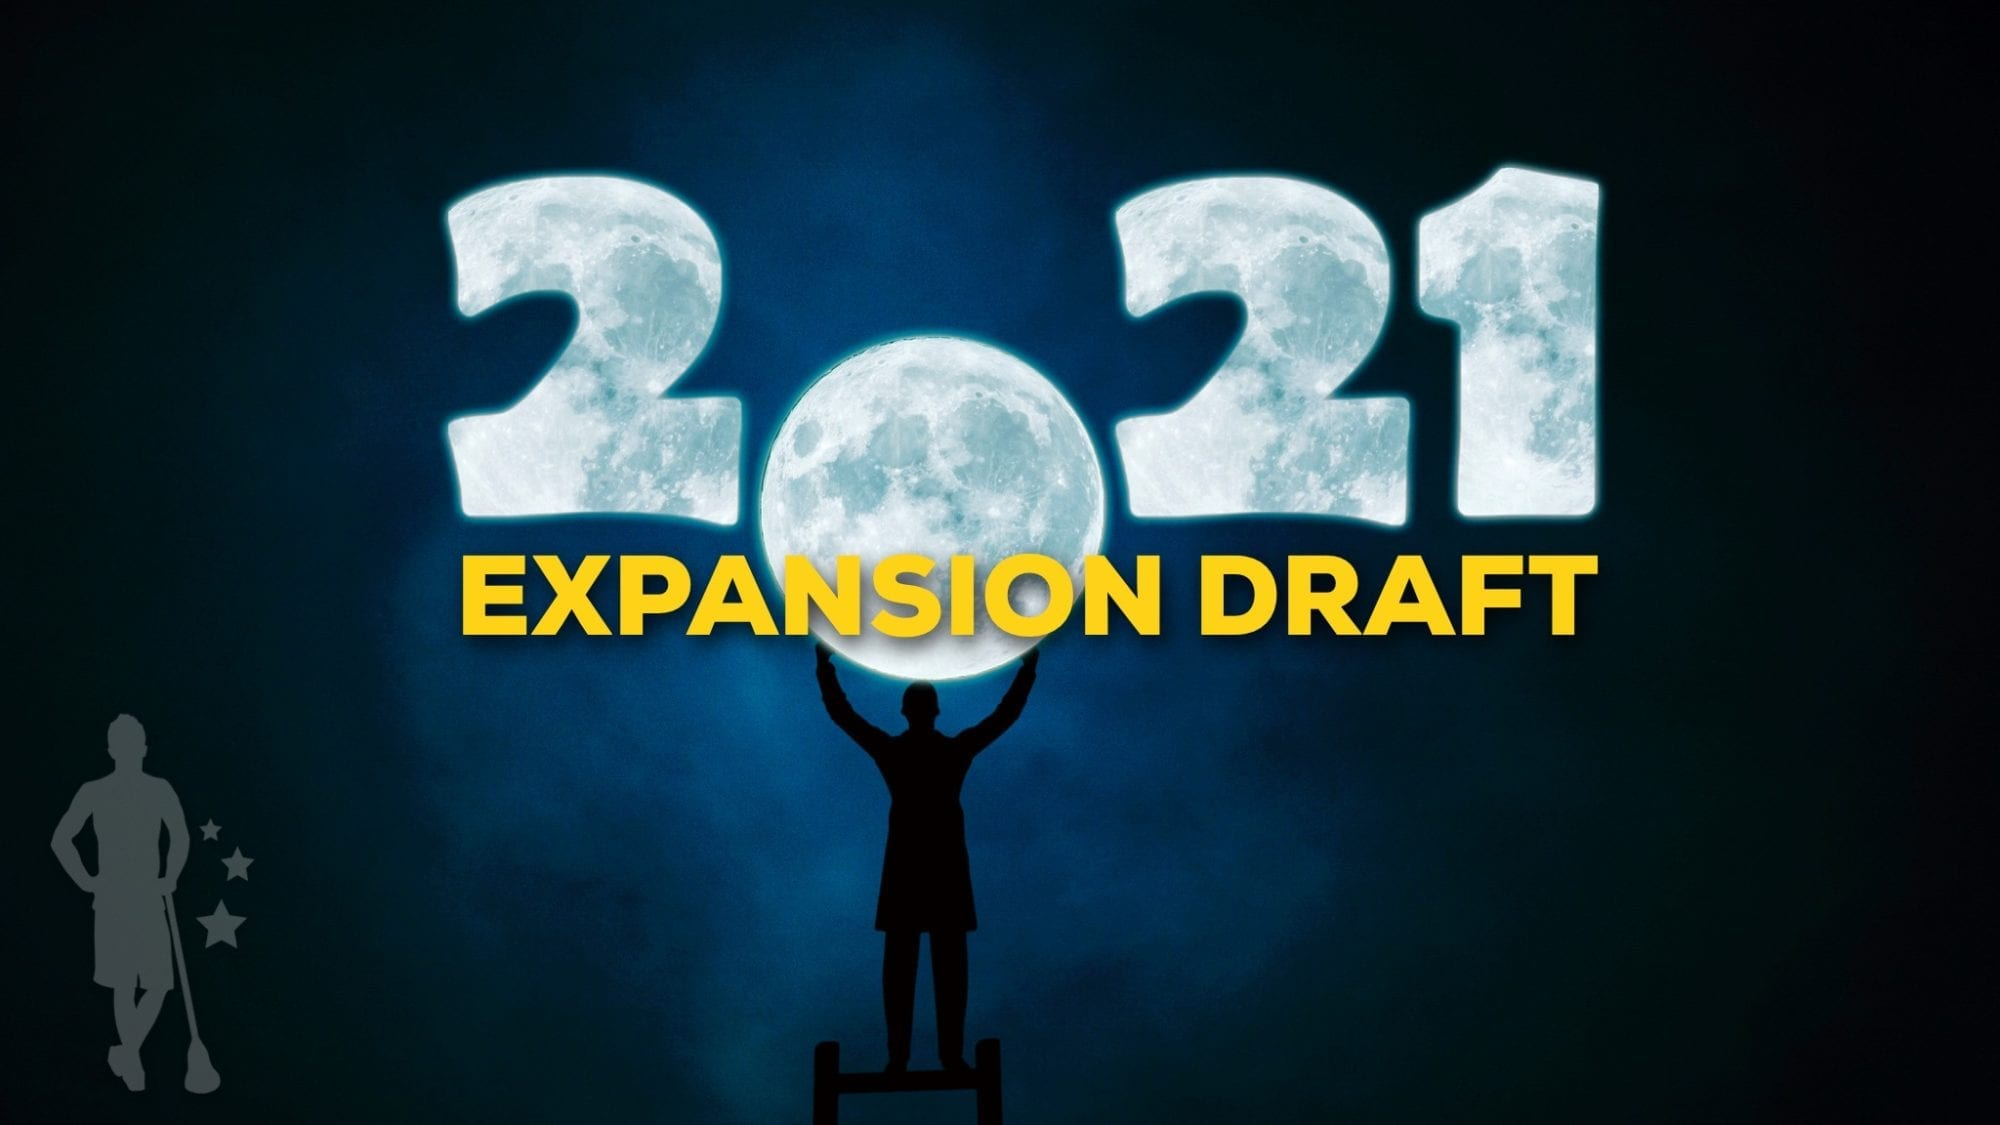 With the PLL and MLL merging, we know an expansion draft is coming. These are projected protections for all seven current teams.